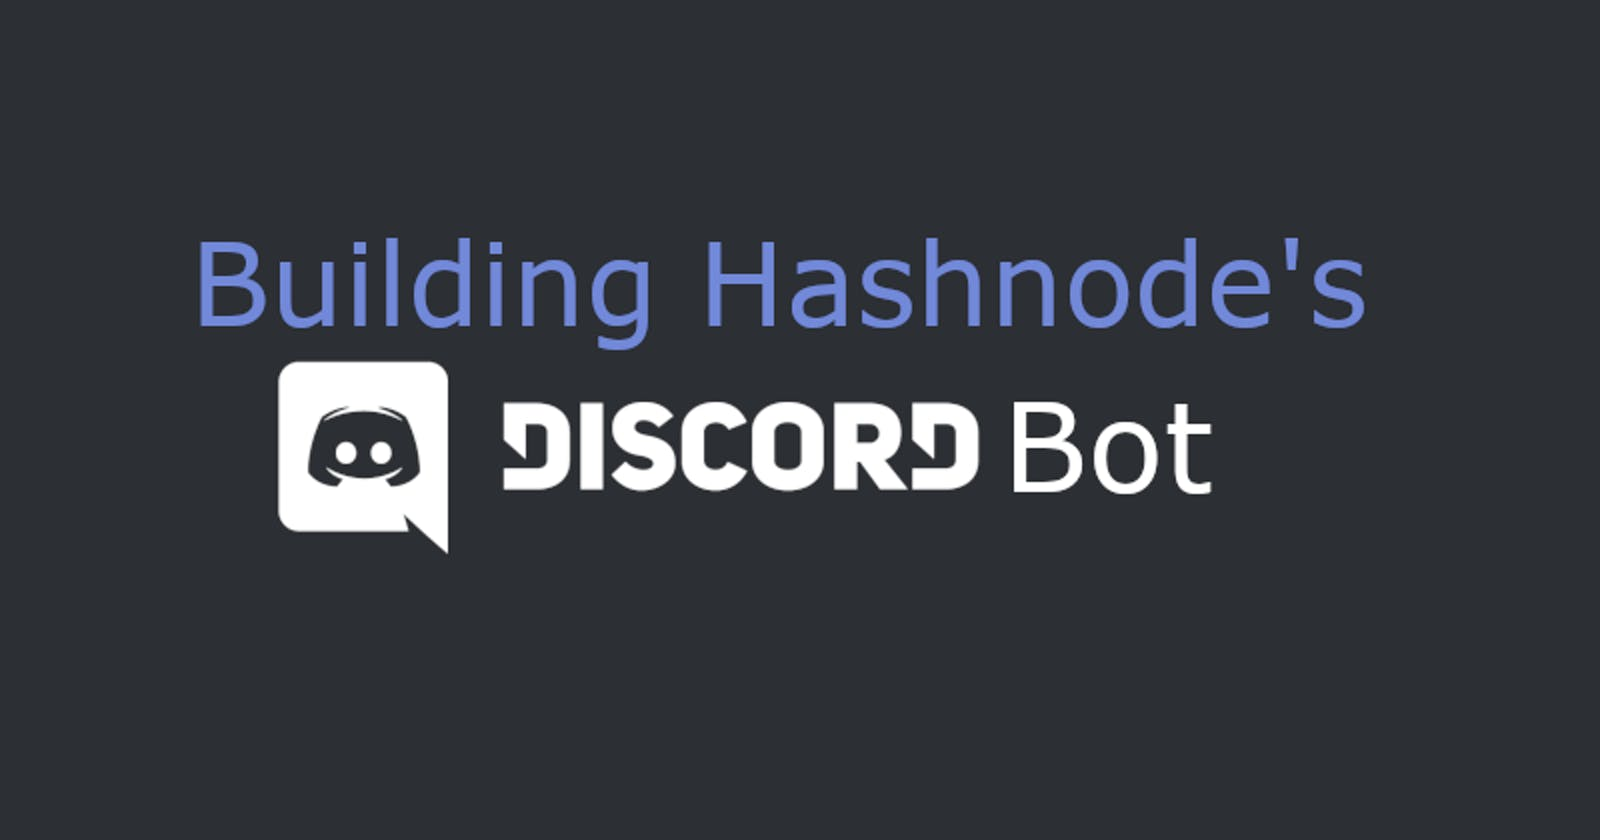 Building Hashnode's Discord Bot - What, why and how?